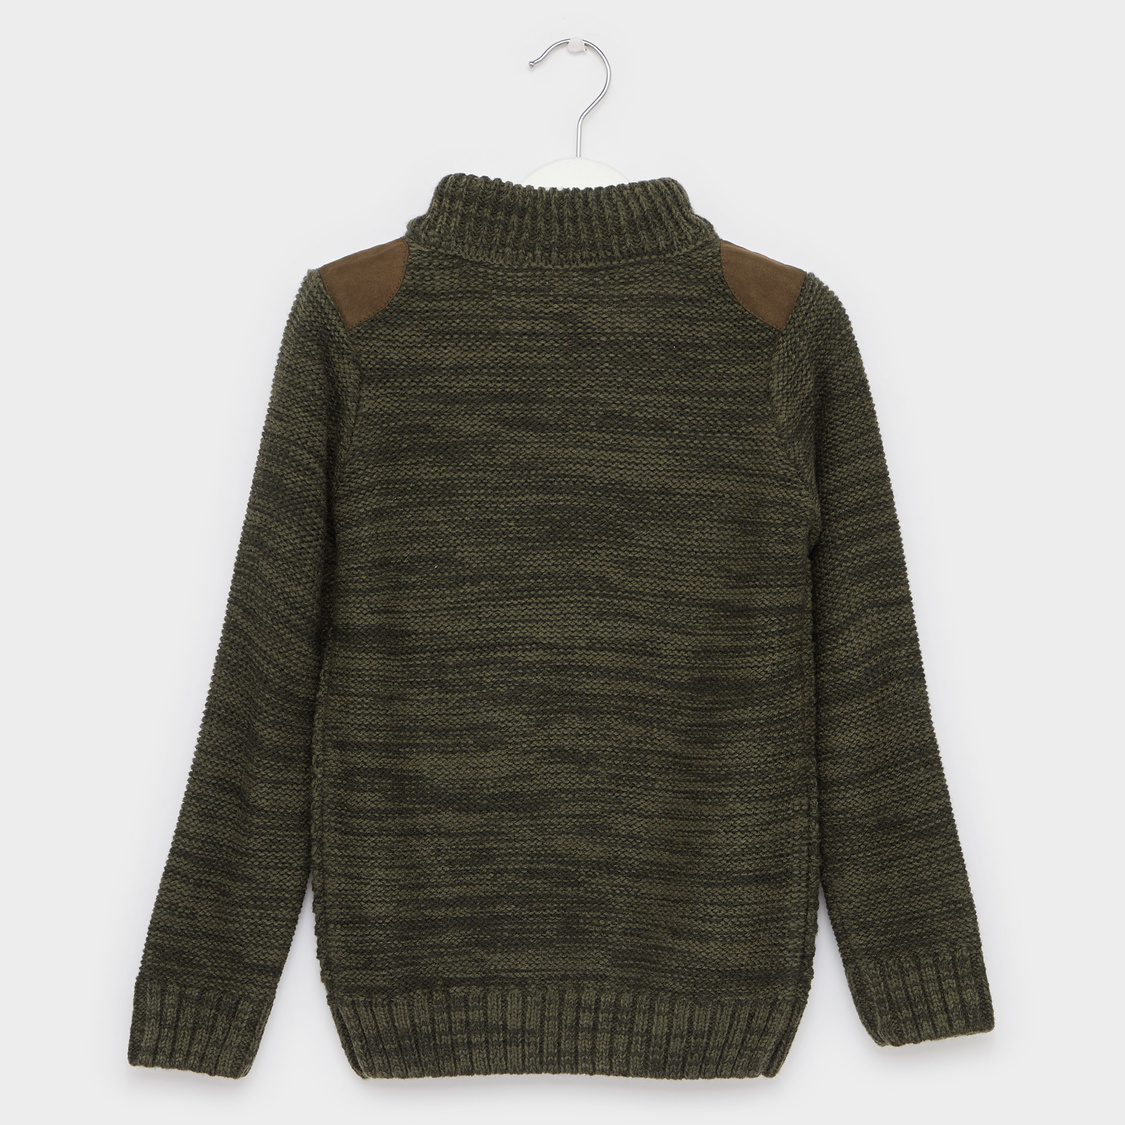 Textured High Neck Sweater with Button Detail and Long Sleeves